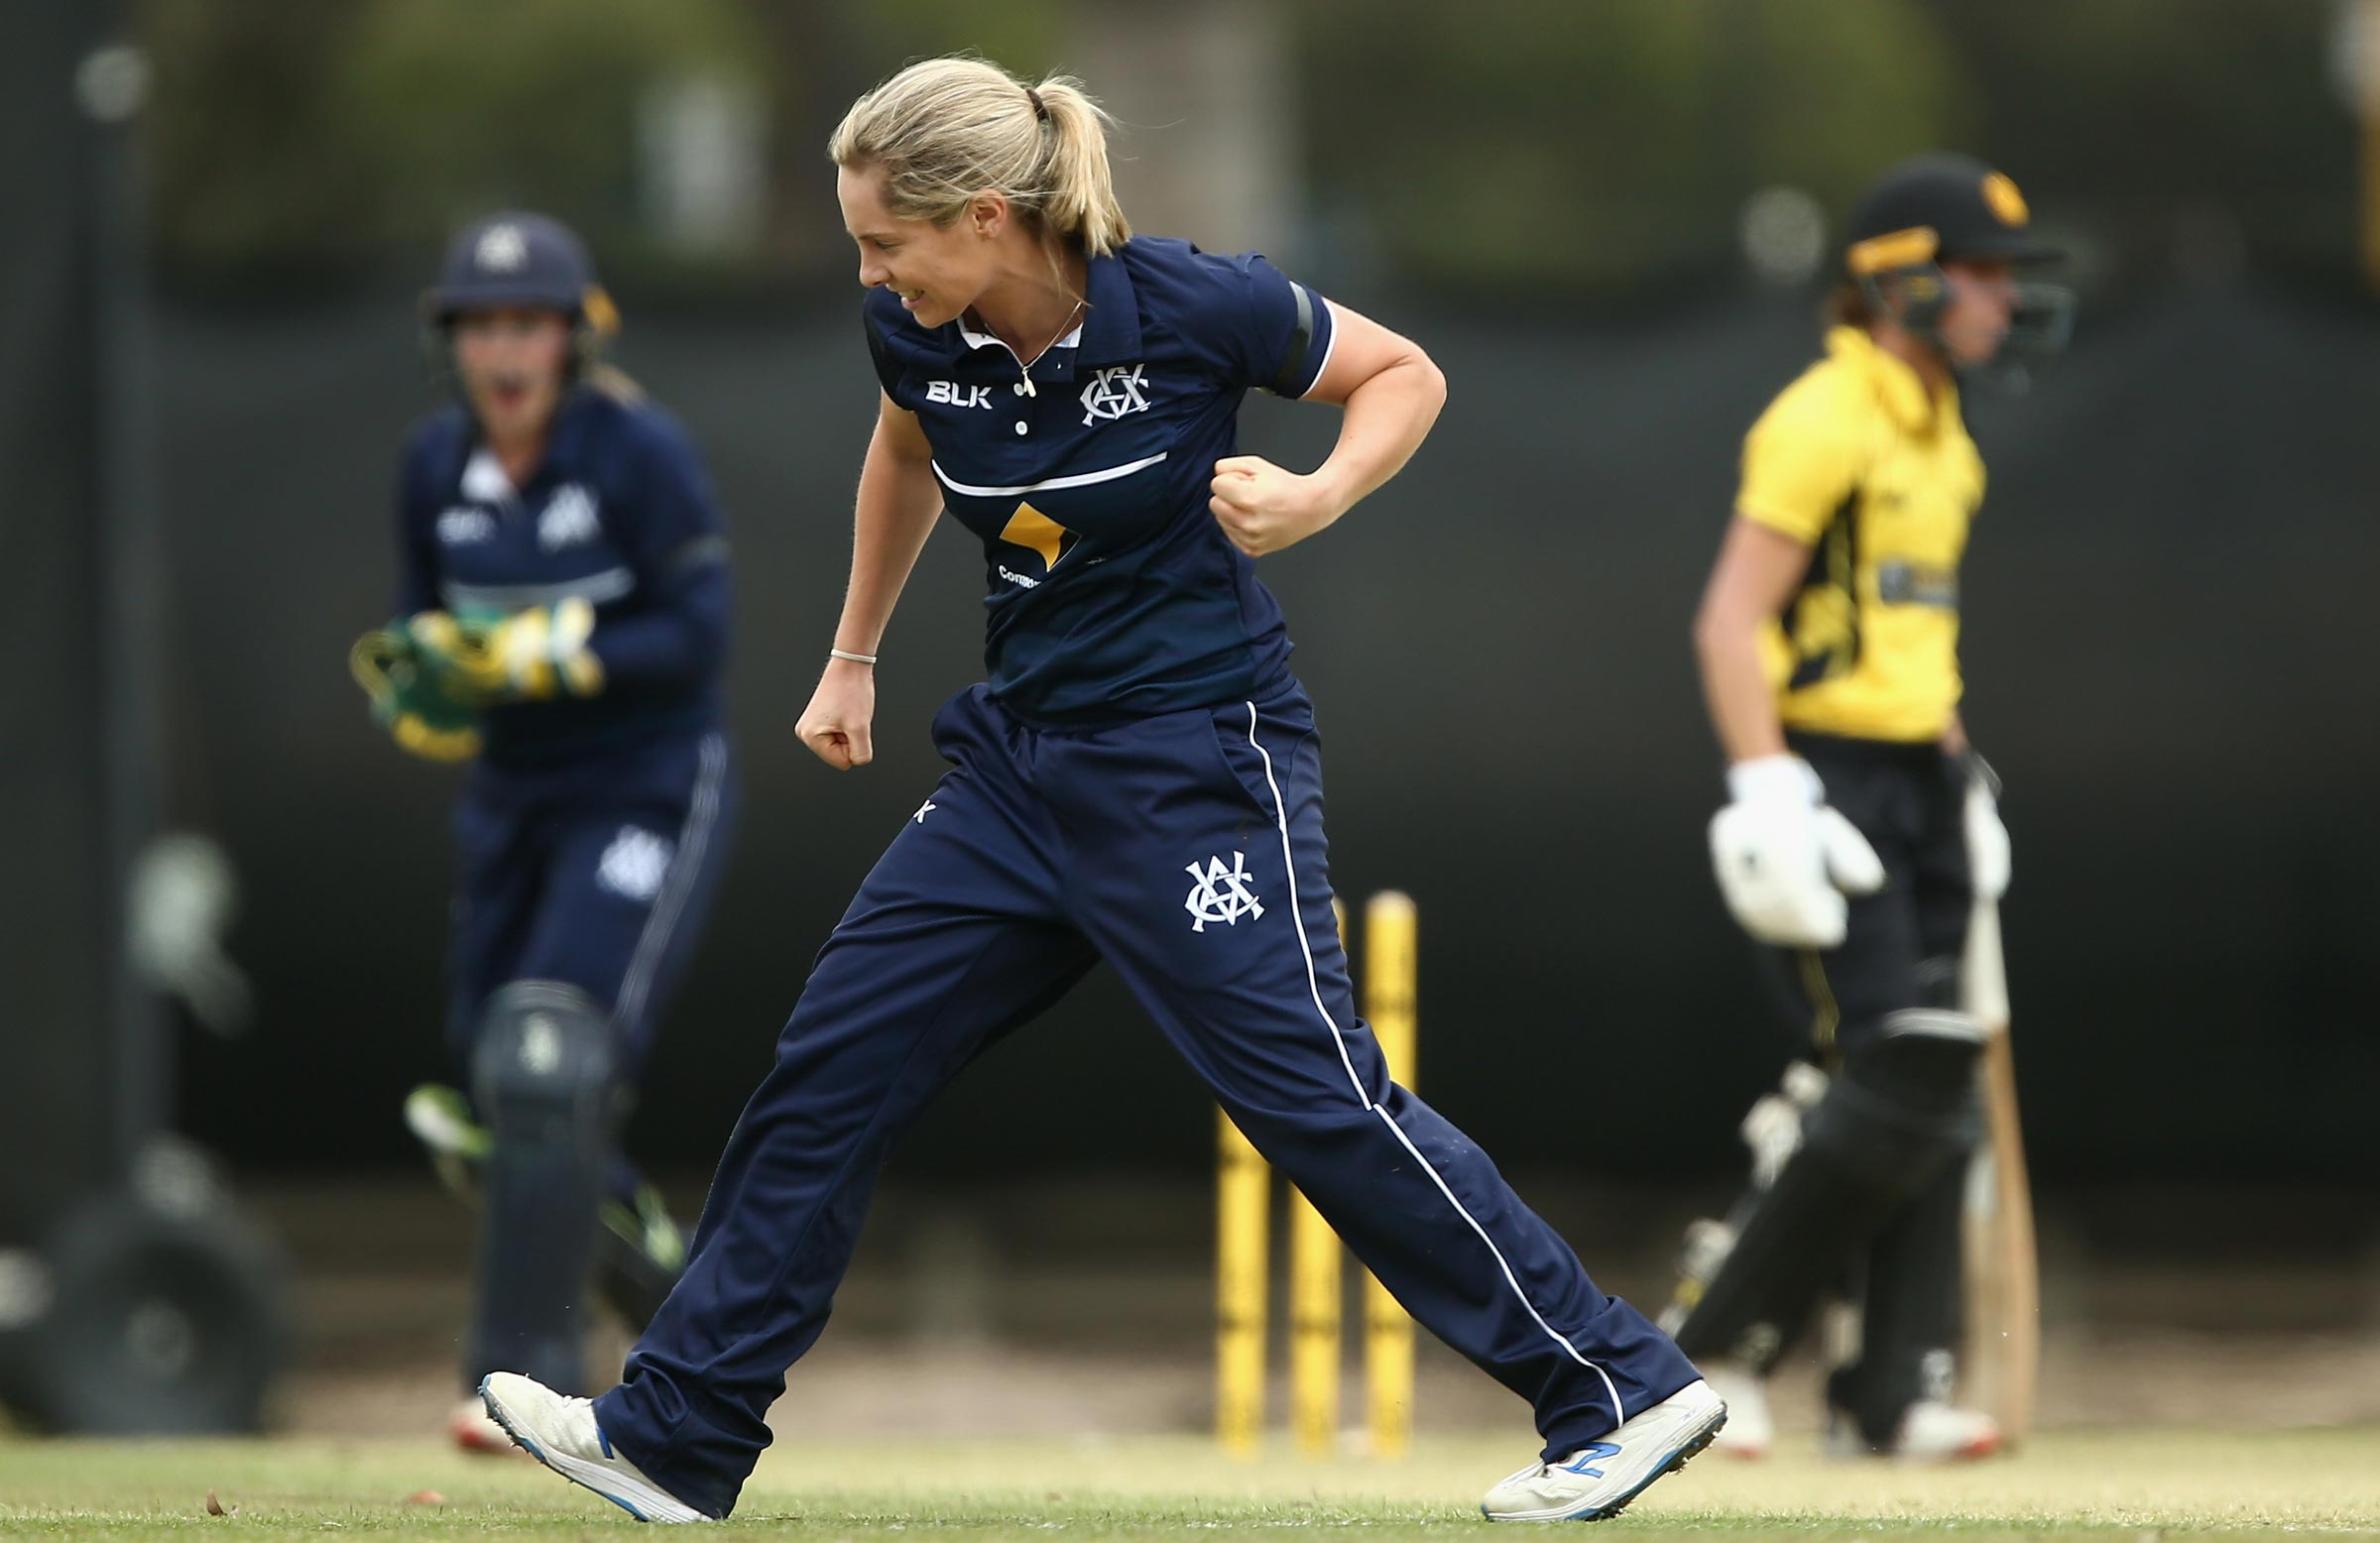 Sophie Molineux celebrates a wicket // AAP